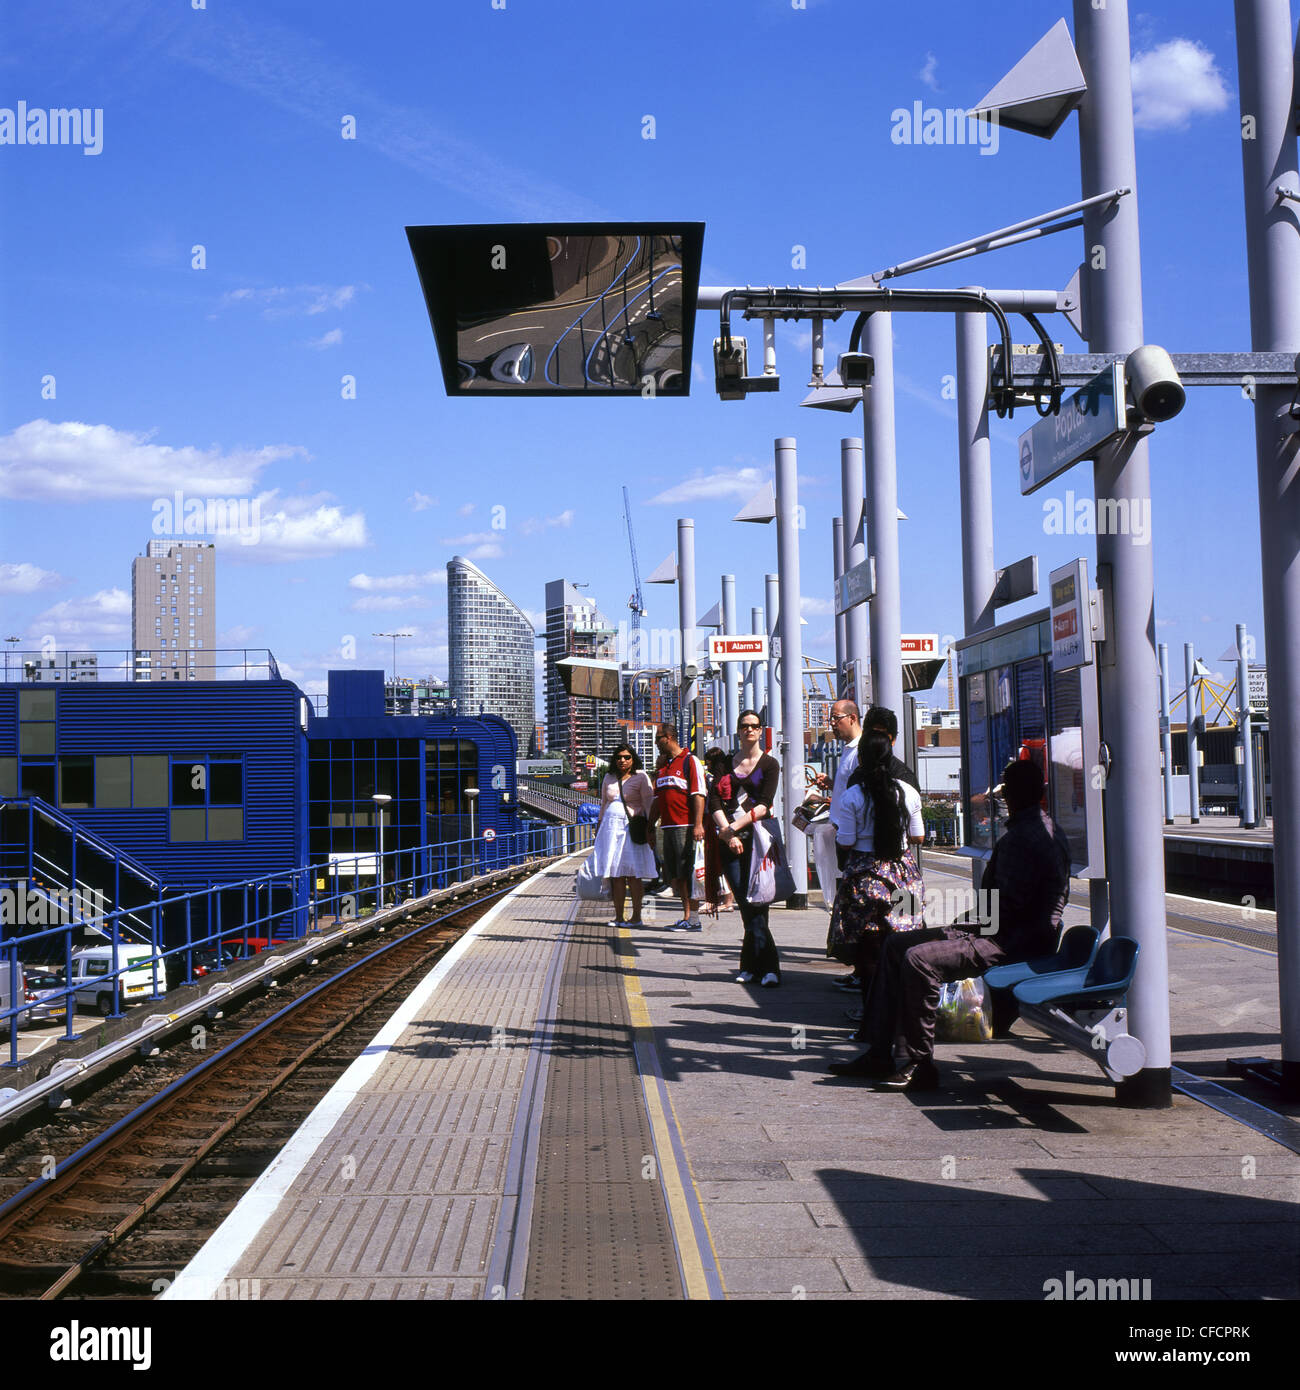 People waiting for an overground DLR train in summer on the platform at Poplar Station London England UK - Stock Image